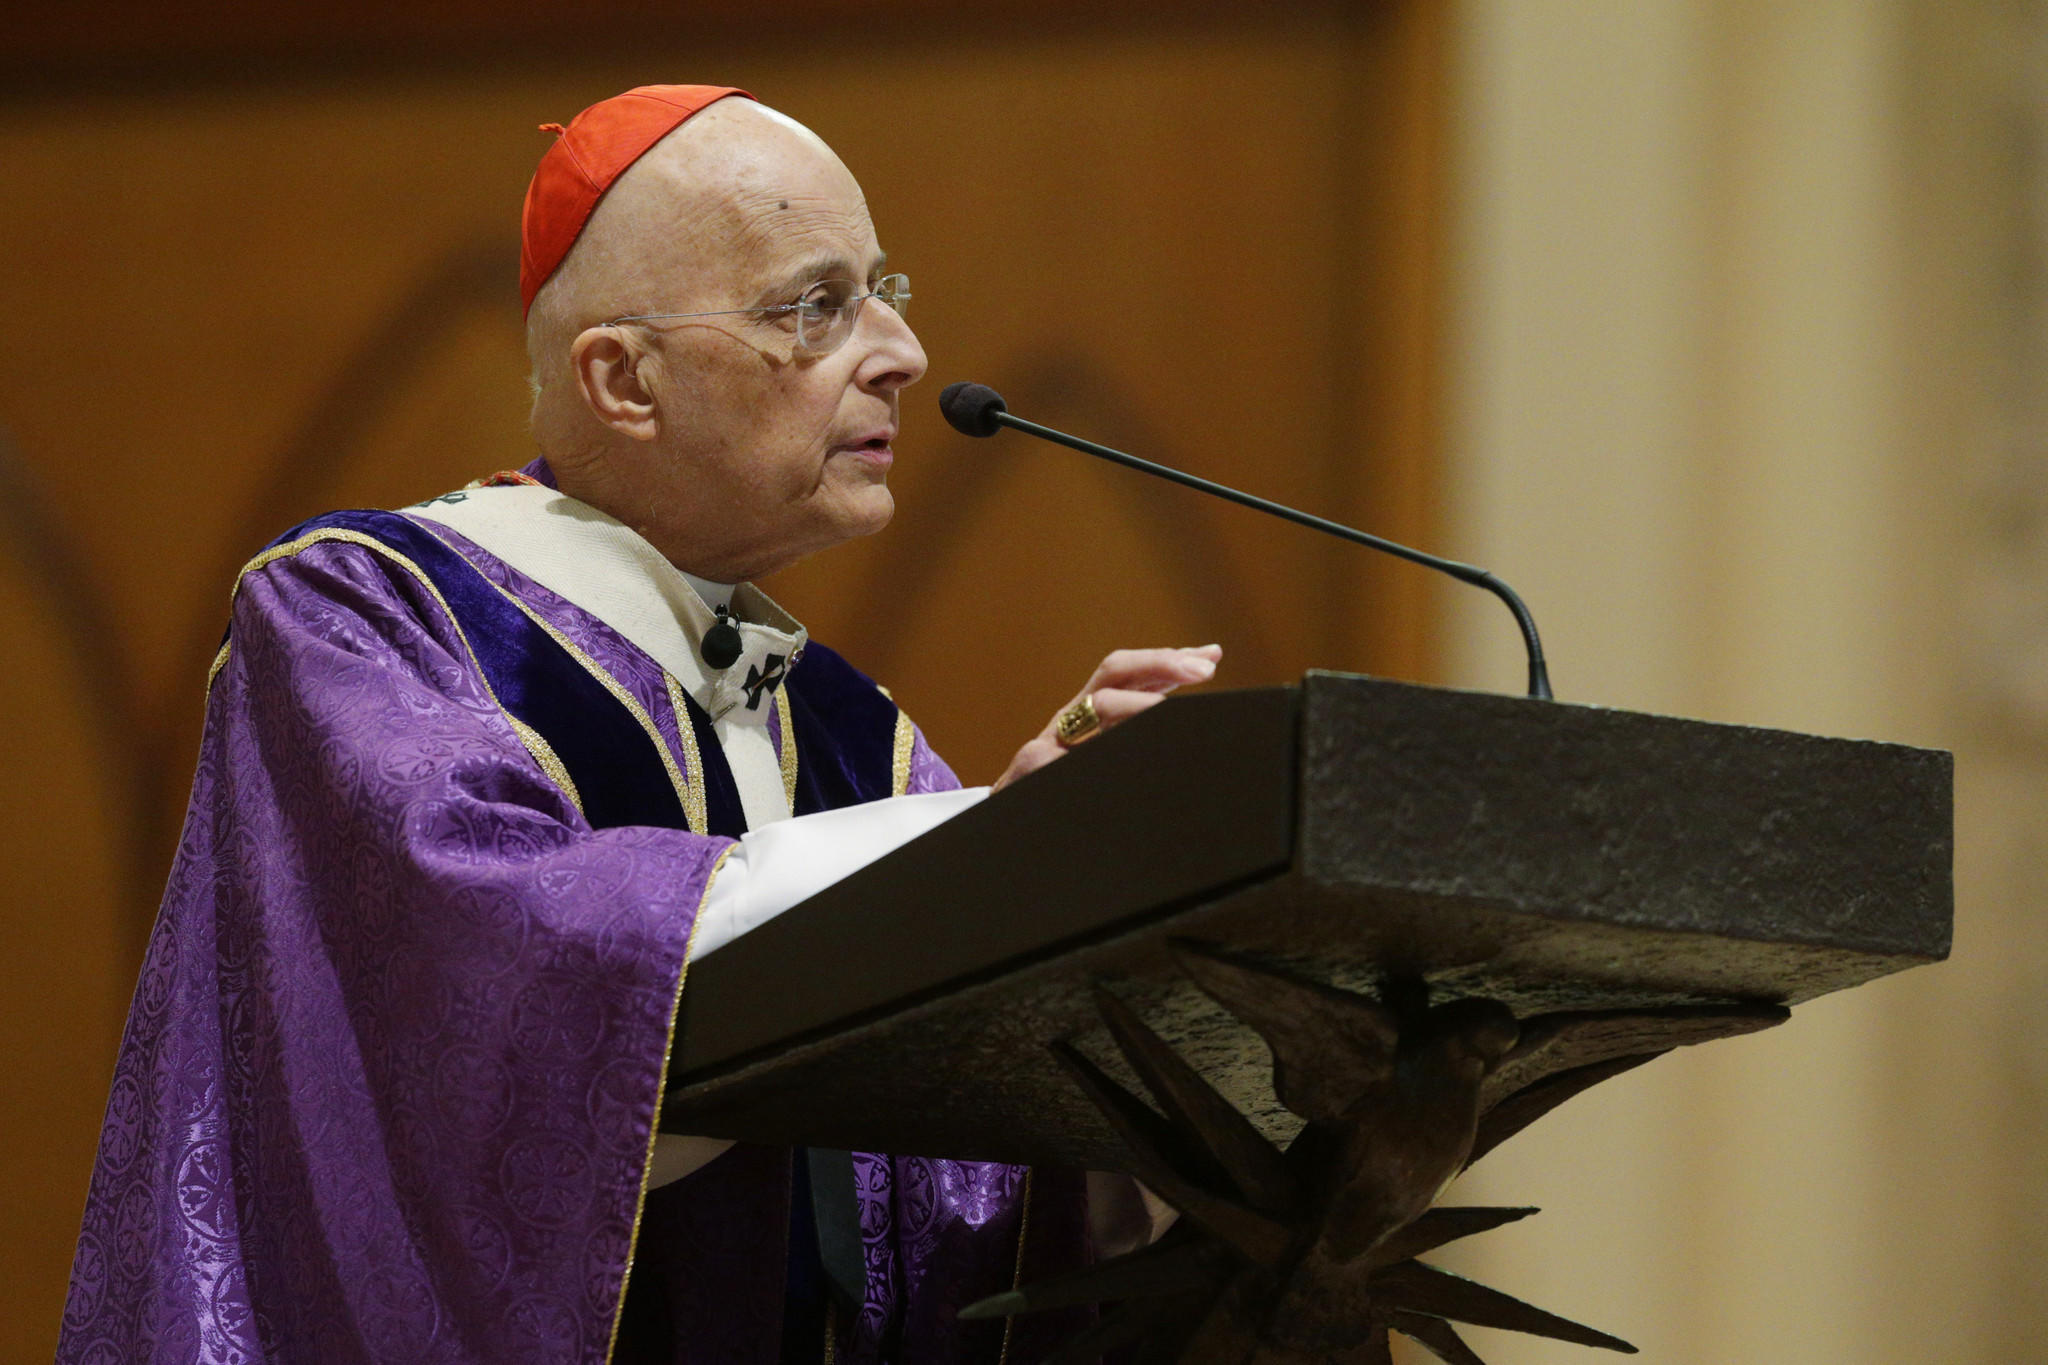 Cardinal Francis George gives the homily during mass at Holy Name Cathedral on March 30.